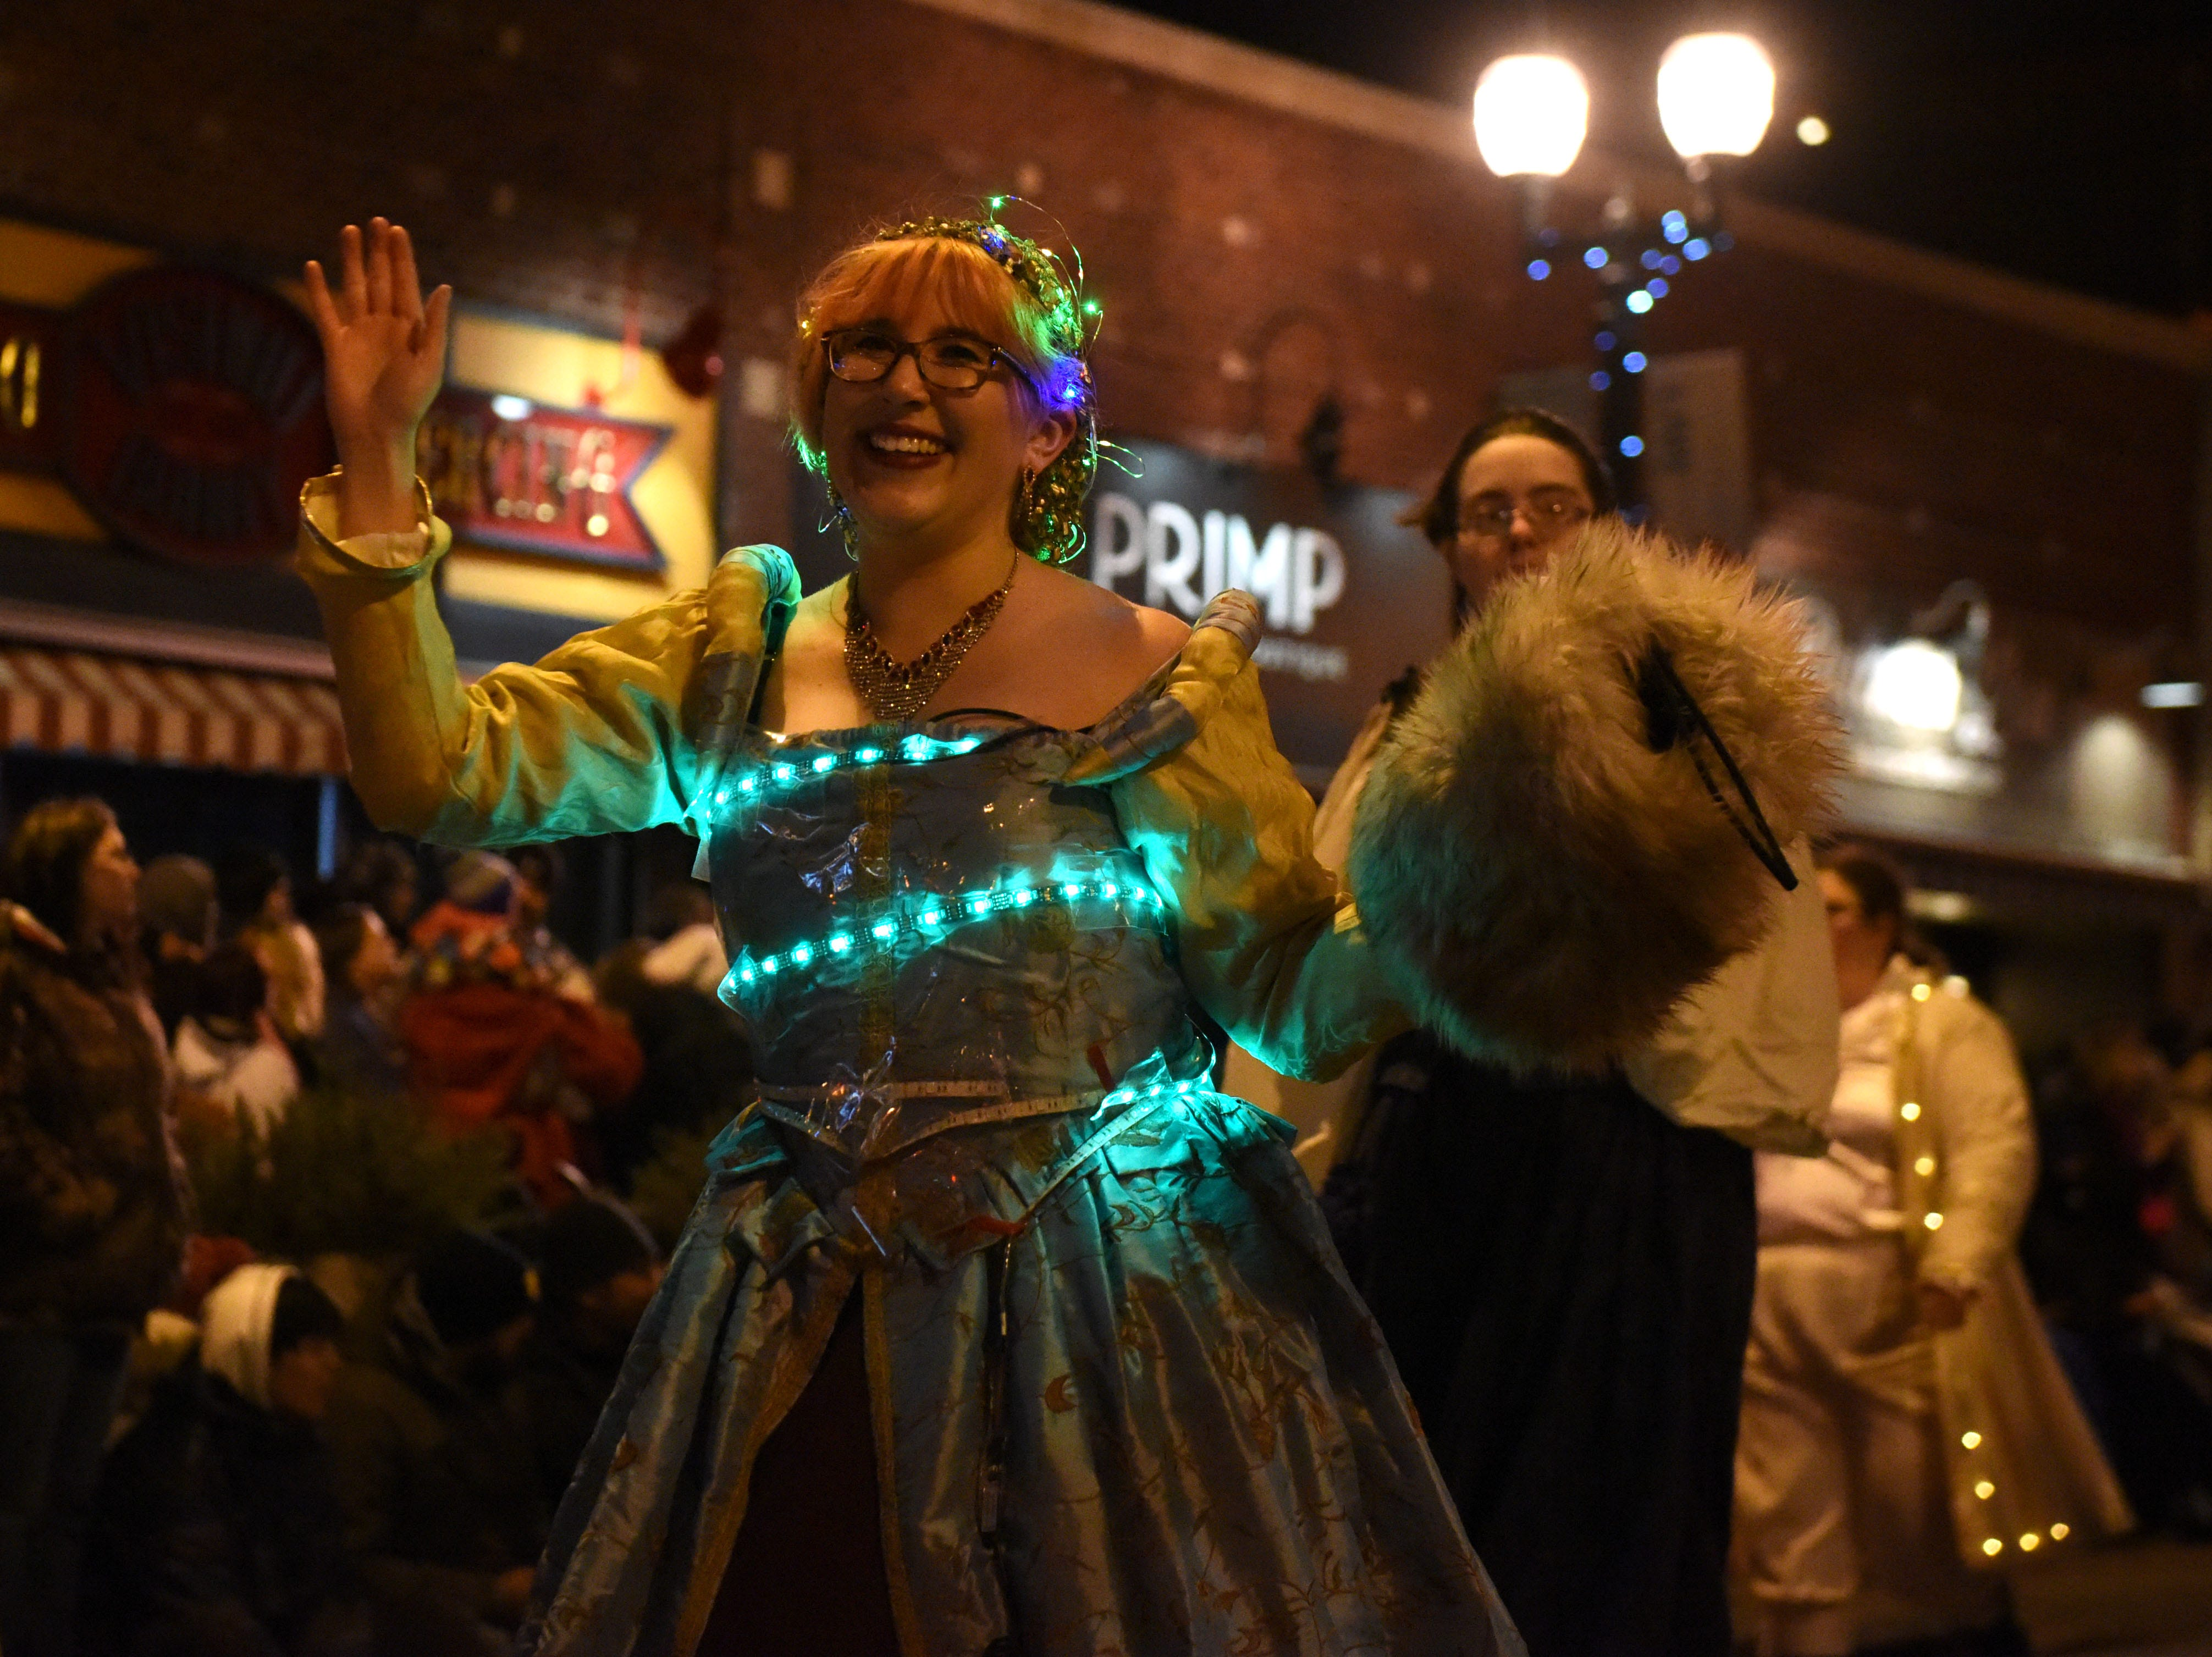 People participate in the annual Parade of Lights in downtown Sioux Falls, S.D., Friday, Nov. 23, 2018.